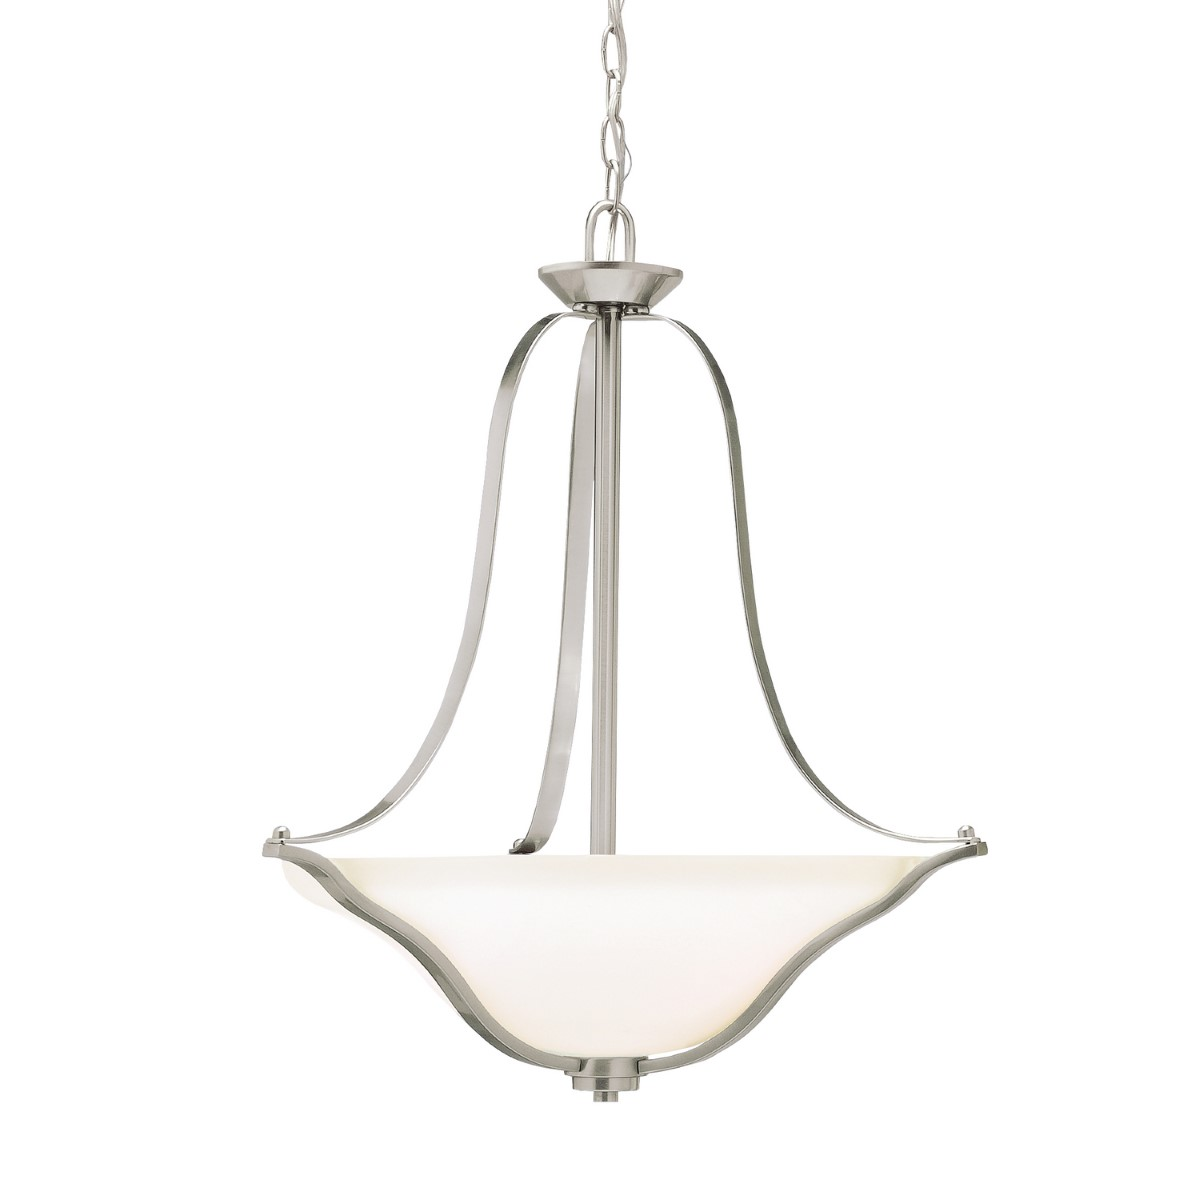 Kichler Langford Langford Pendant Light with Satin Etched White Steel Shade - Brushed Nickel (3384NI)